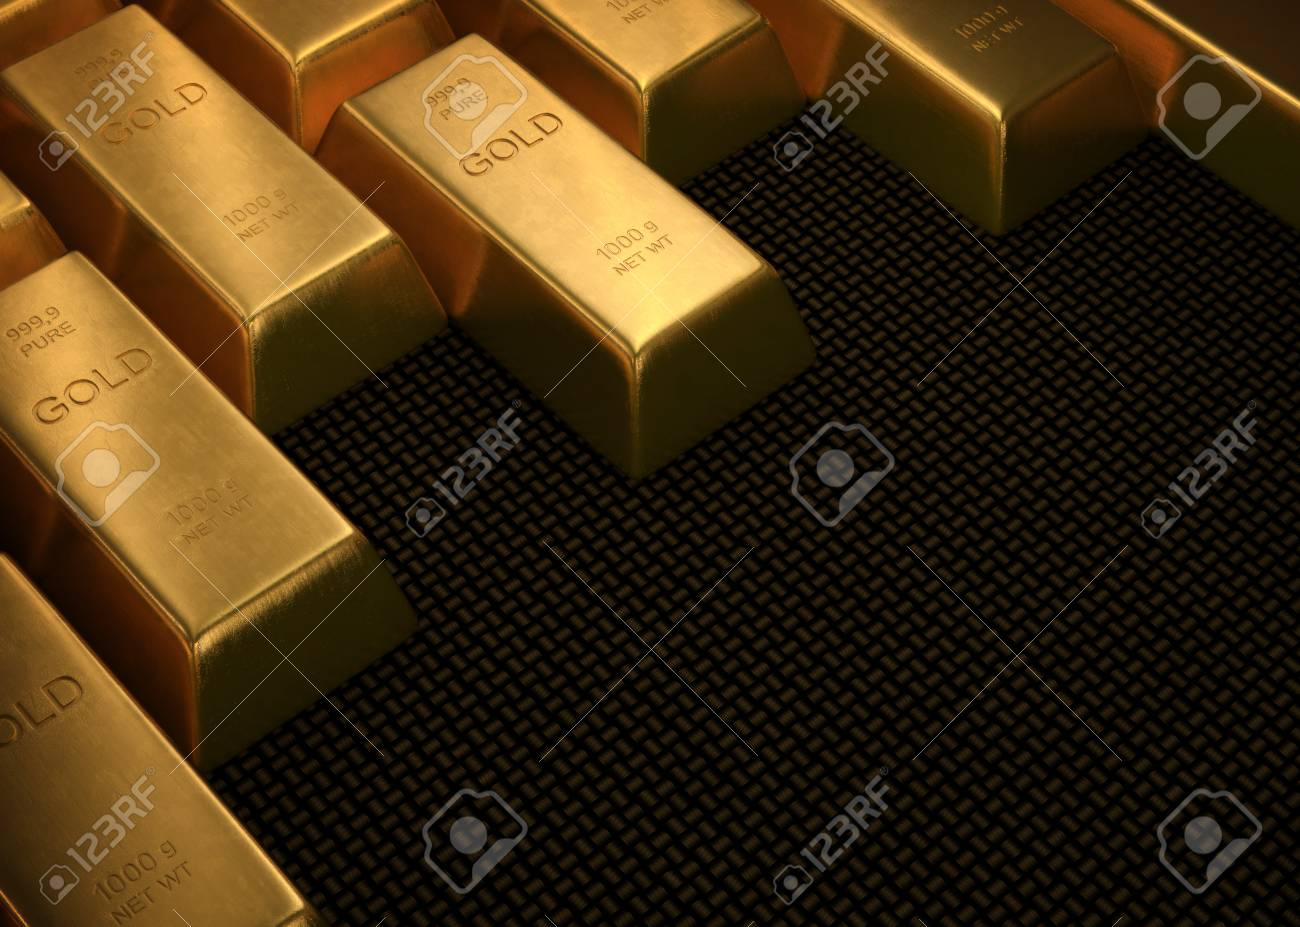 Gold bars on black surface. Your text in space without gold. - 33263791